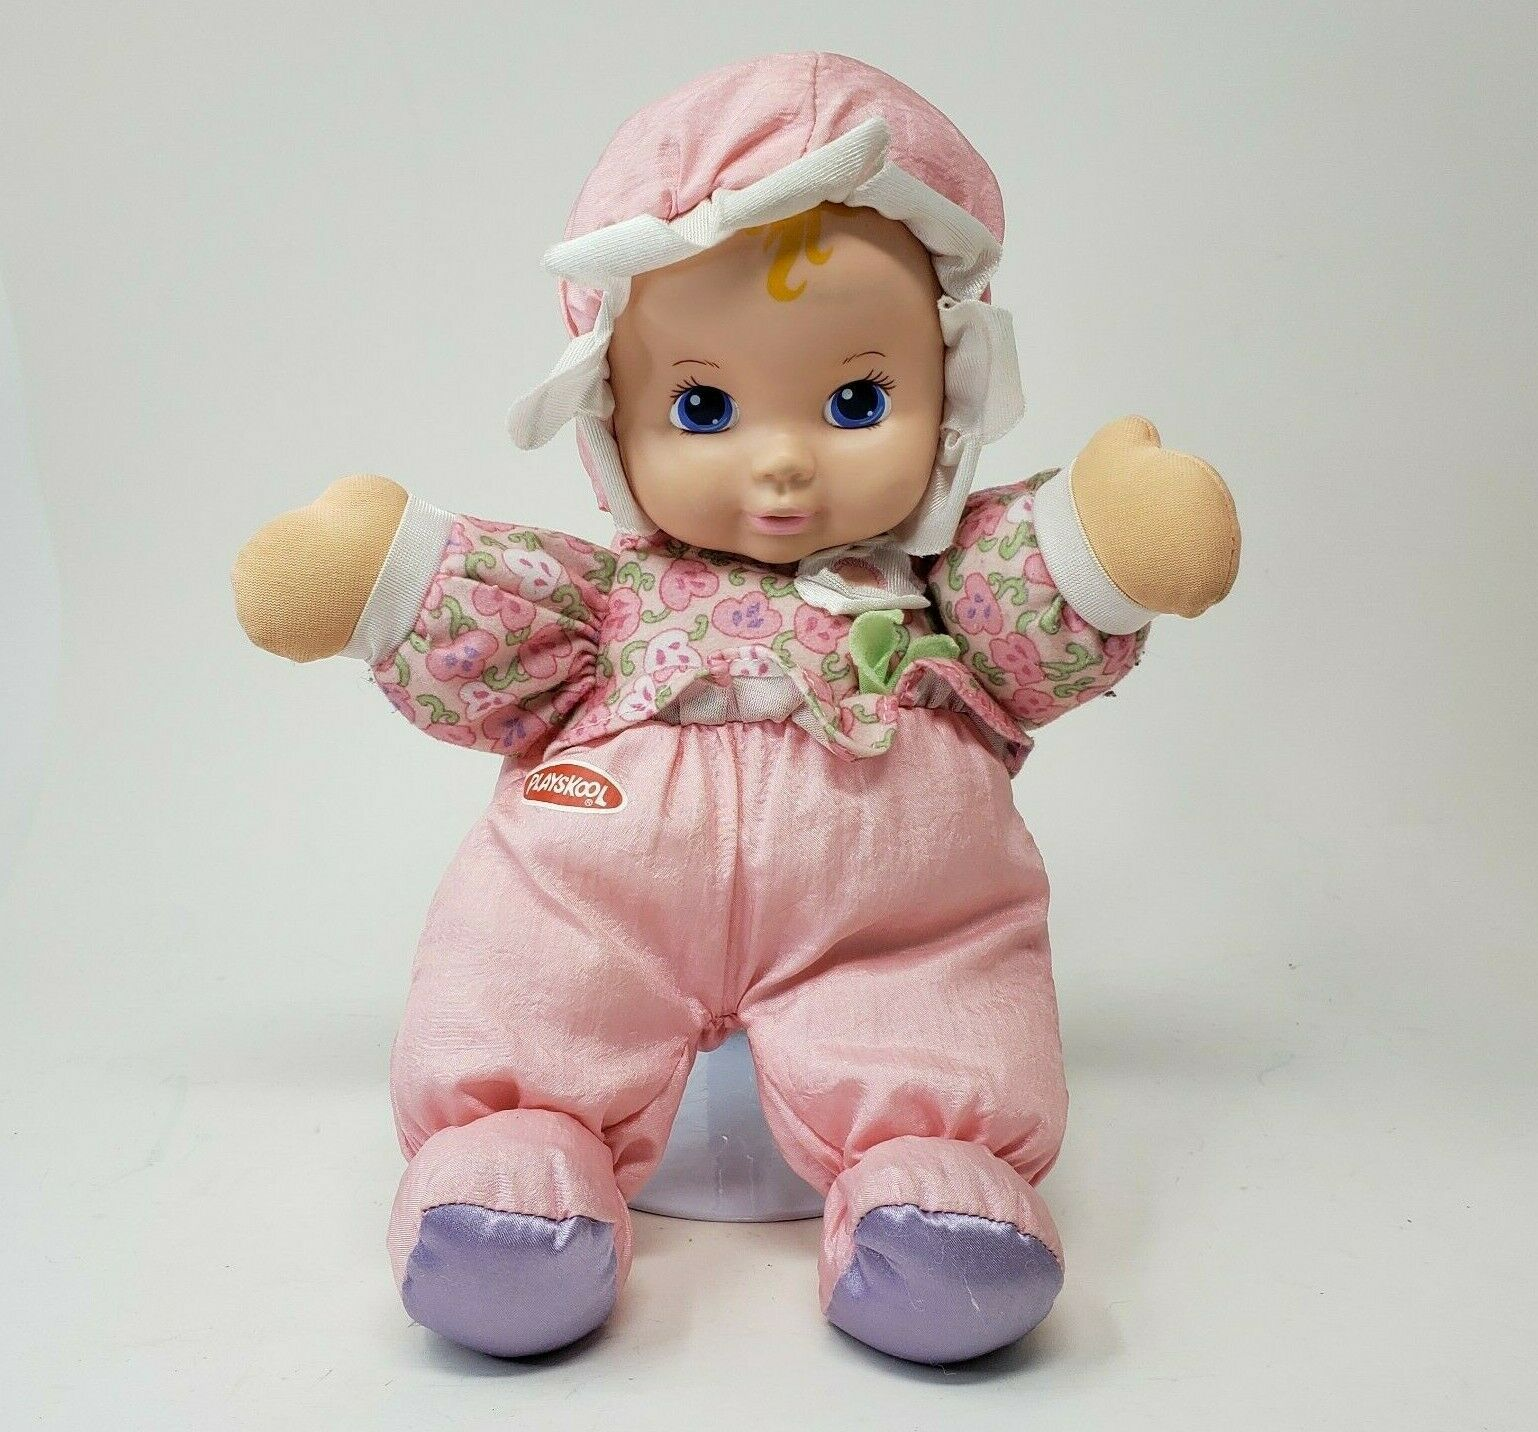 Primary image for VINTAGE 1999 PLAYSKOOL MY VERY SOFT BABY PINK STUFFED ANIMAL PLUSH DOLL SQUEAKER